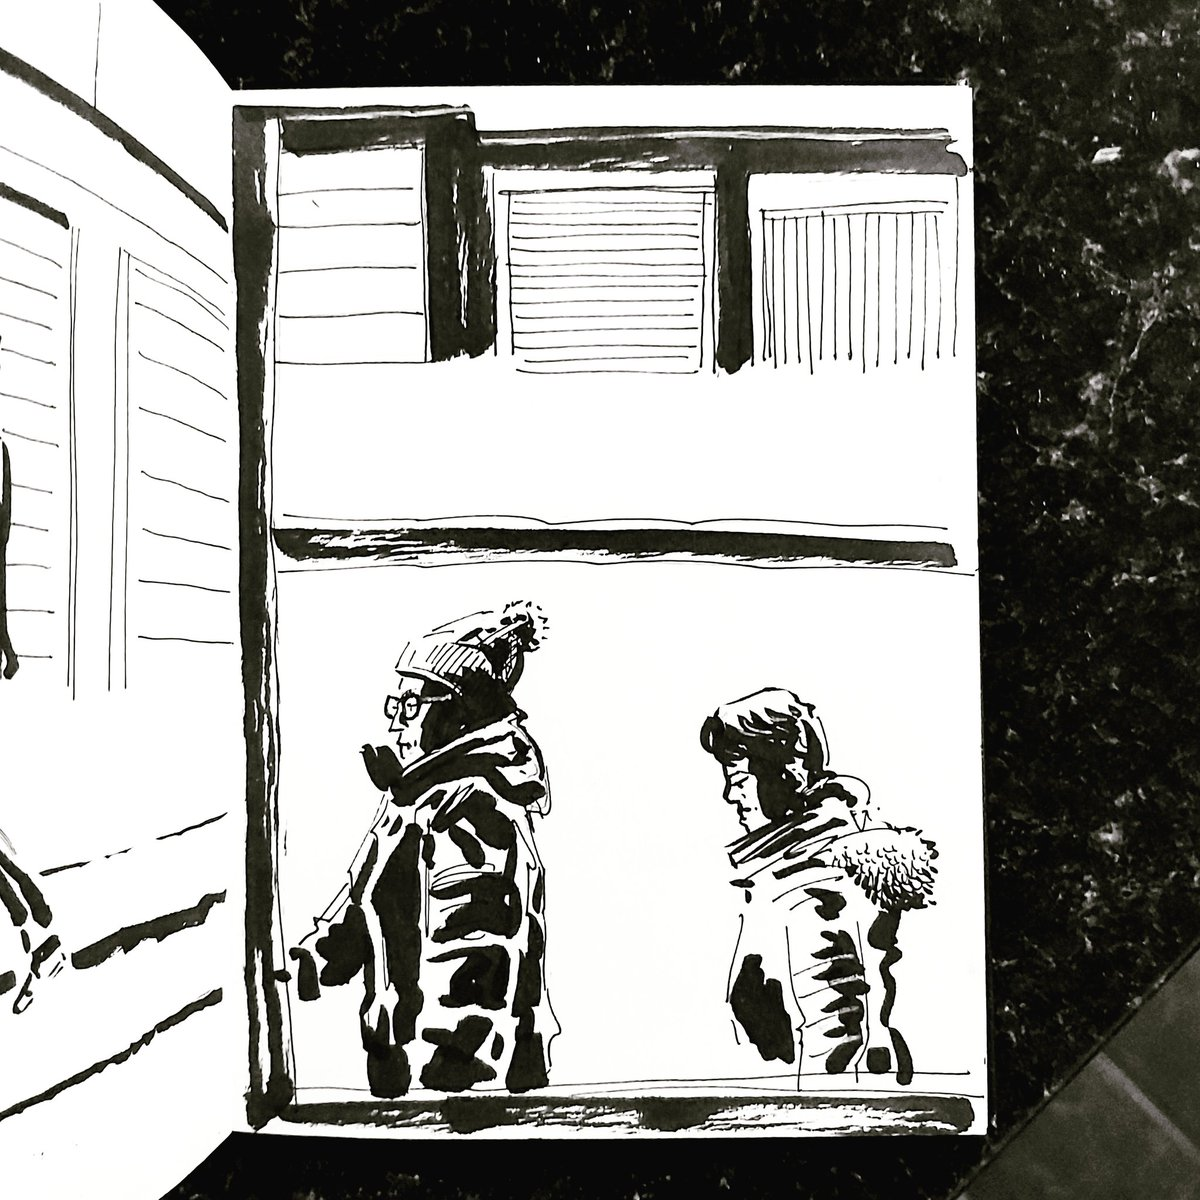 From the Inside 2 Day 112 (261 total) #isolation study Kitchen window Passerby No 151/152#isolationlife #stayathome #lockdown #lockdown2uk #sketchbook #sketch #drawing #draw #doodle #ink #lineart #lifedrawing #figuredrawing #walk #artoftheday #art #artwork #artist #illustration